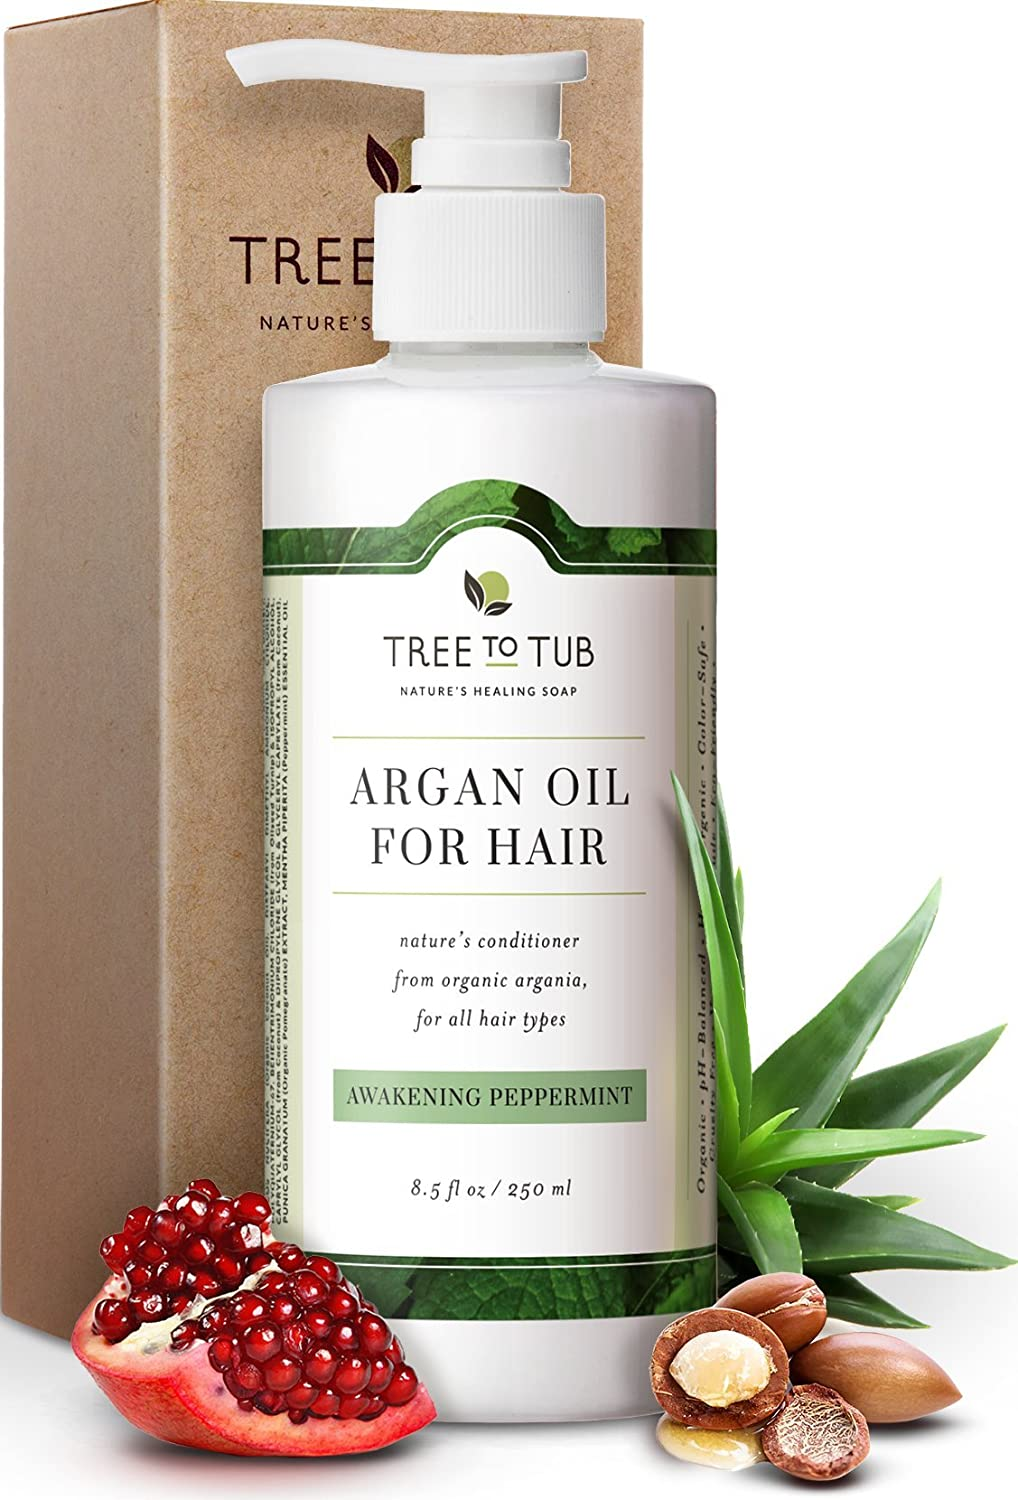 Moisturizing Argan Oil Conditioner by Tree To Tub - pH 5.5 Balanced Hydrating Hair Conditioner for Soft, Shiny Hair and Calm Scalp with Organic Coconut Oil, Mint Essential Oil 8.5 oz